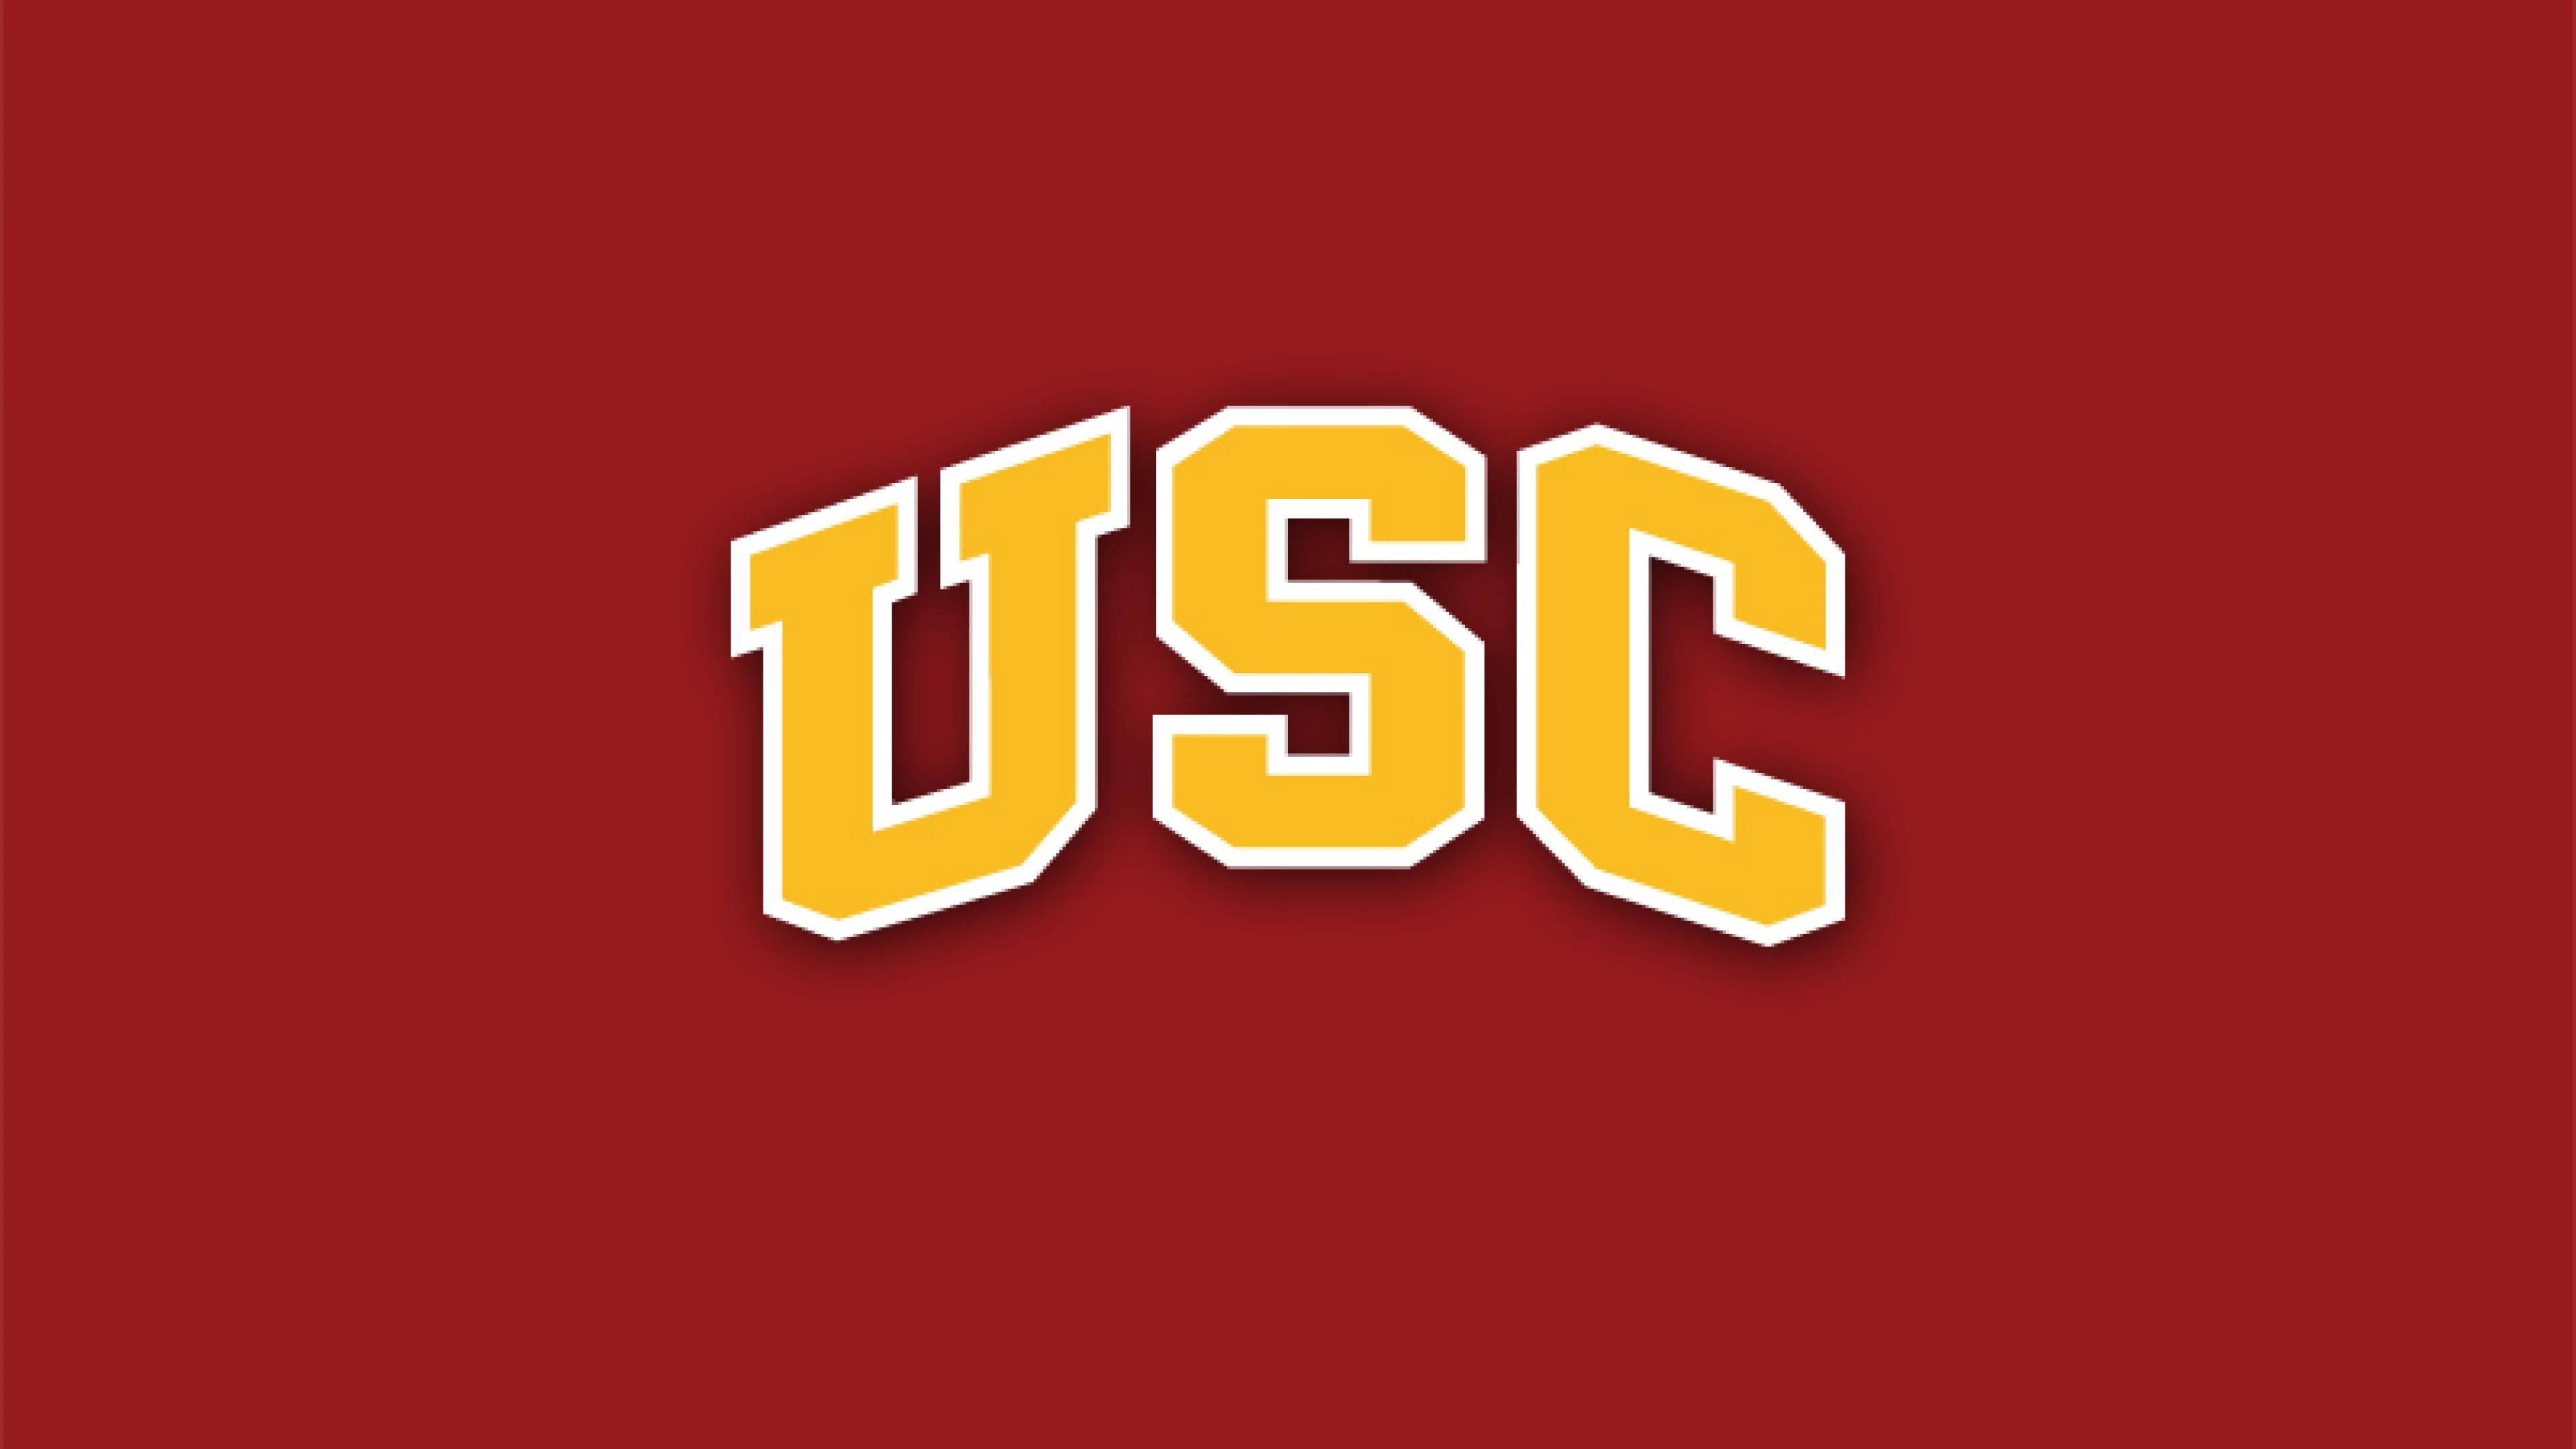 Wallpaperwiki HD Usc Football Wallpaper PIC WPD00383